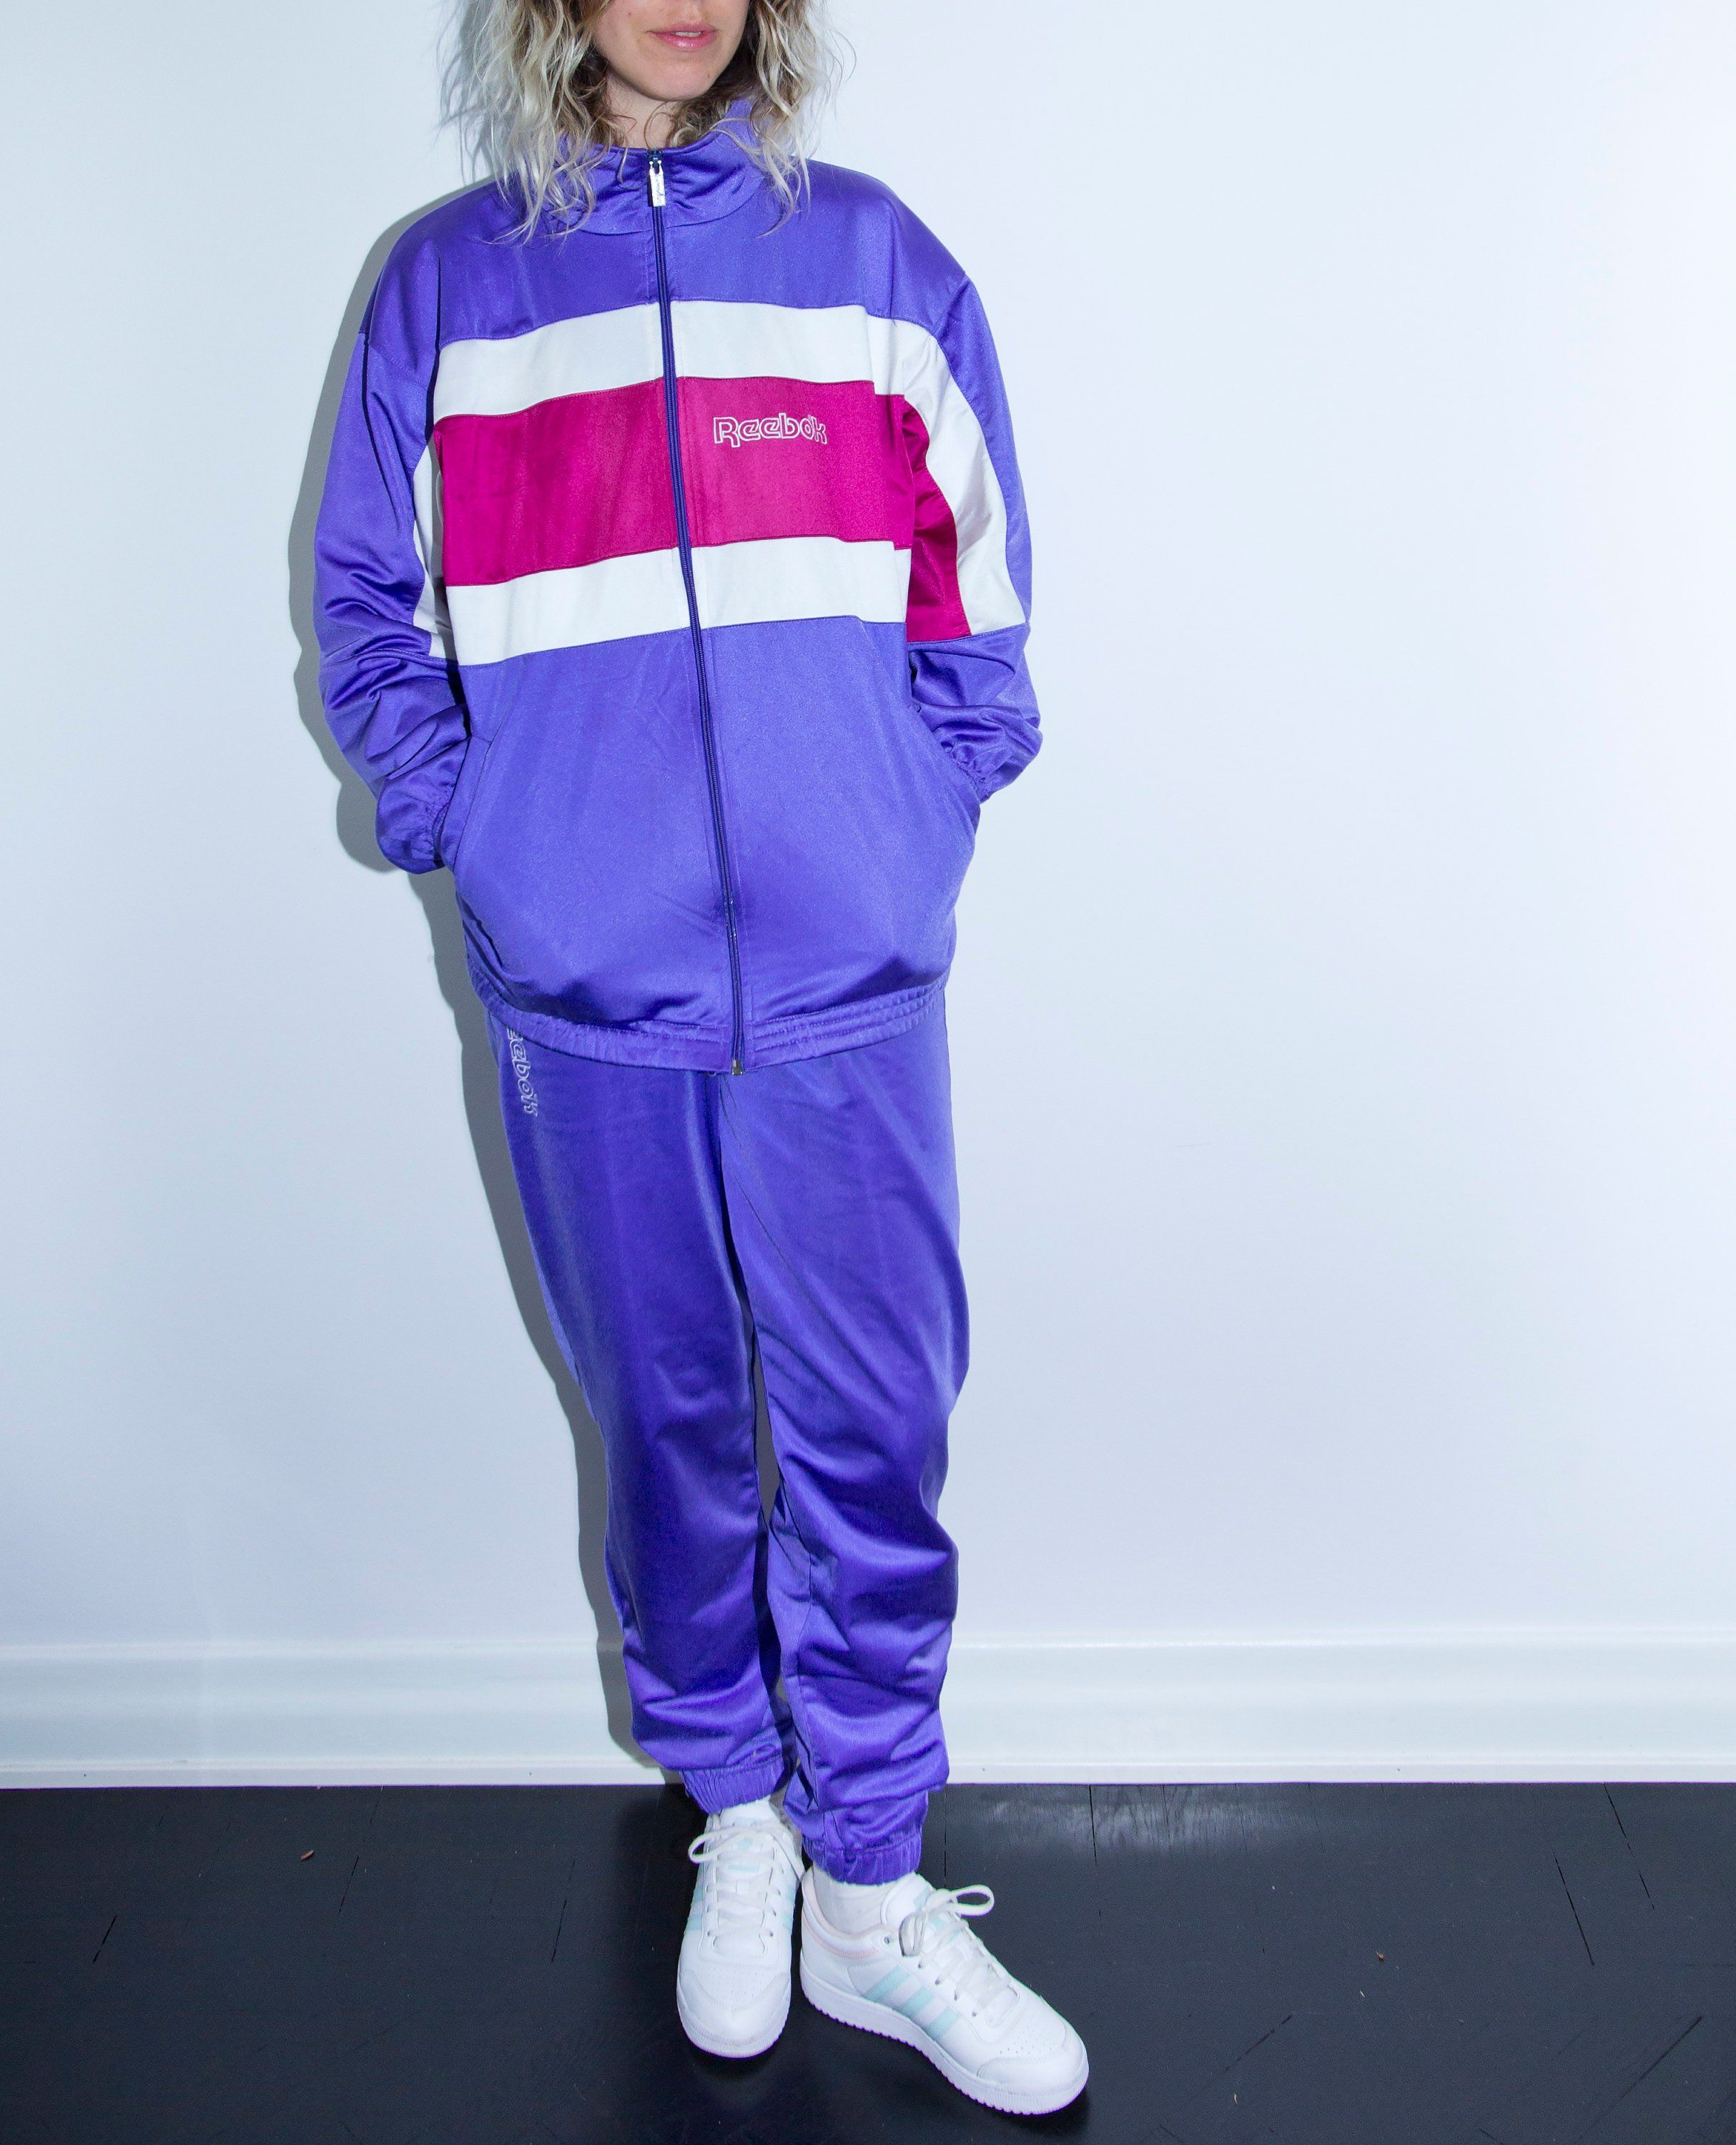 new product bdf3a 68d8a 80s / 90s Reebok Tracksuit 80's 90's Vintage Jacket and ...